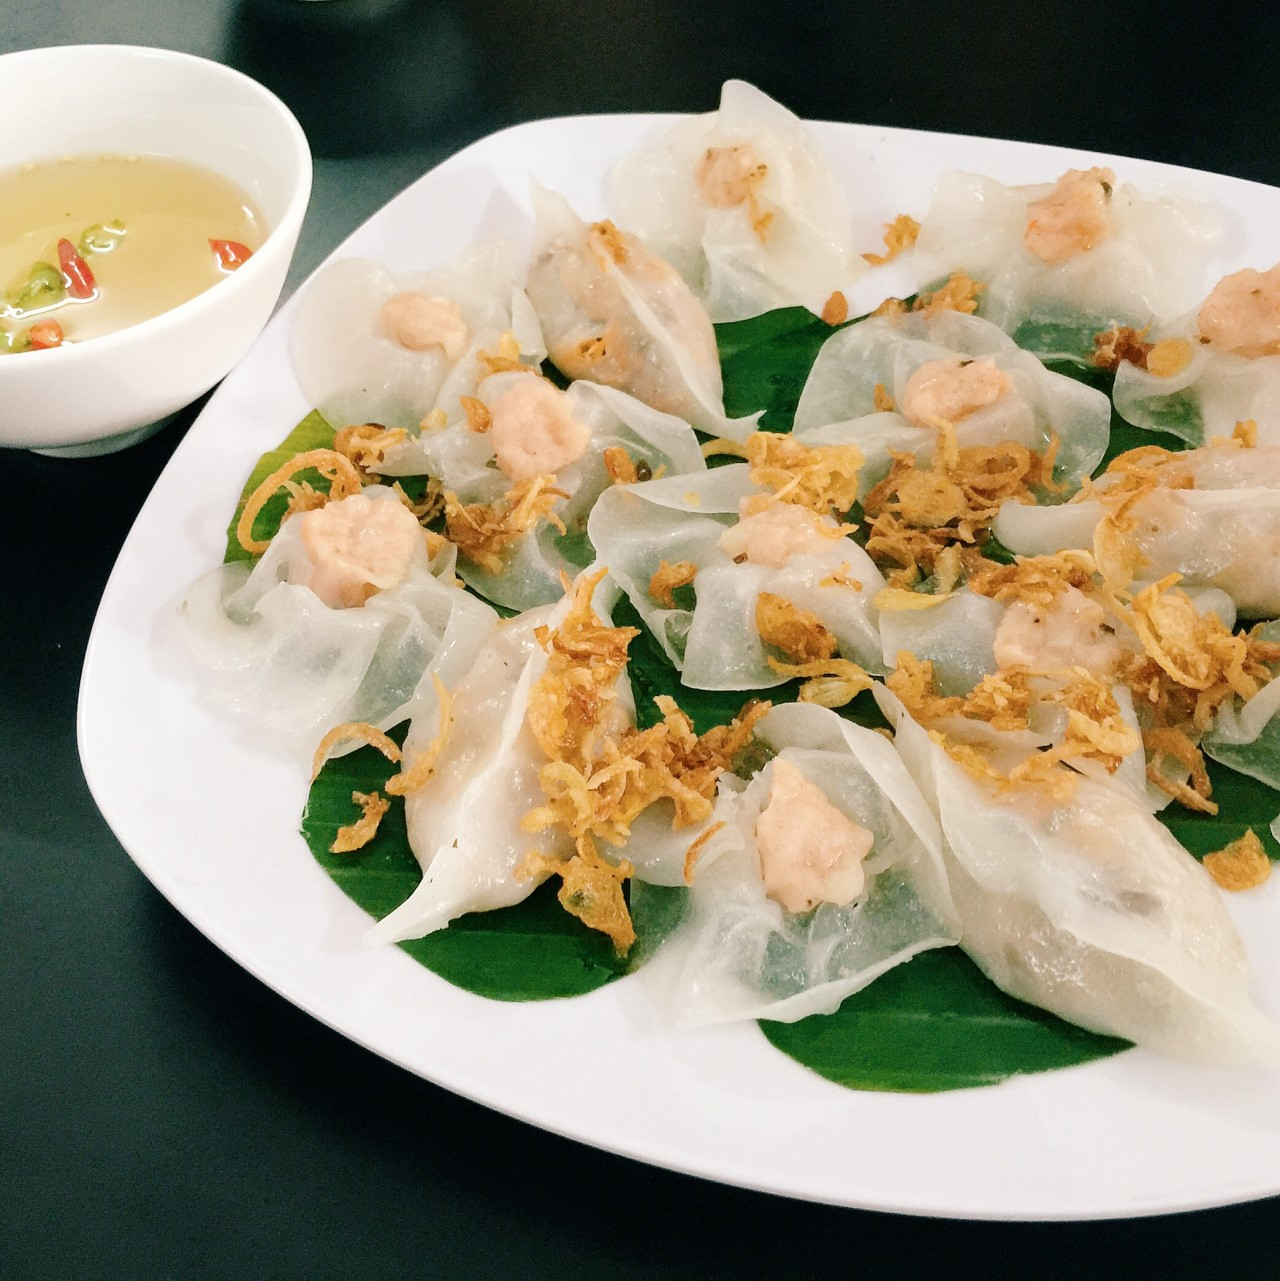 banh-bao-vac-or-white-rose-dumplings-in-hoi-an-are-well-cooked-than-the-others-saigon-riders